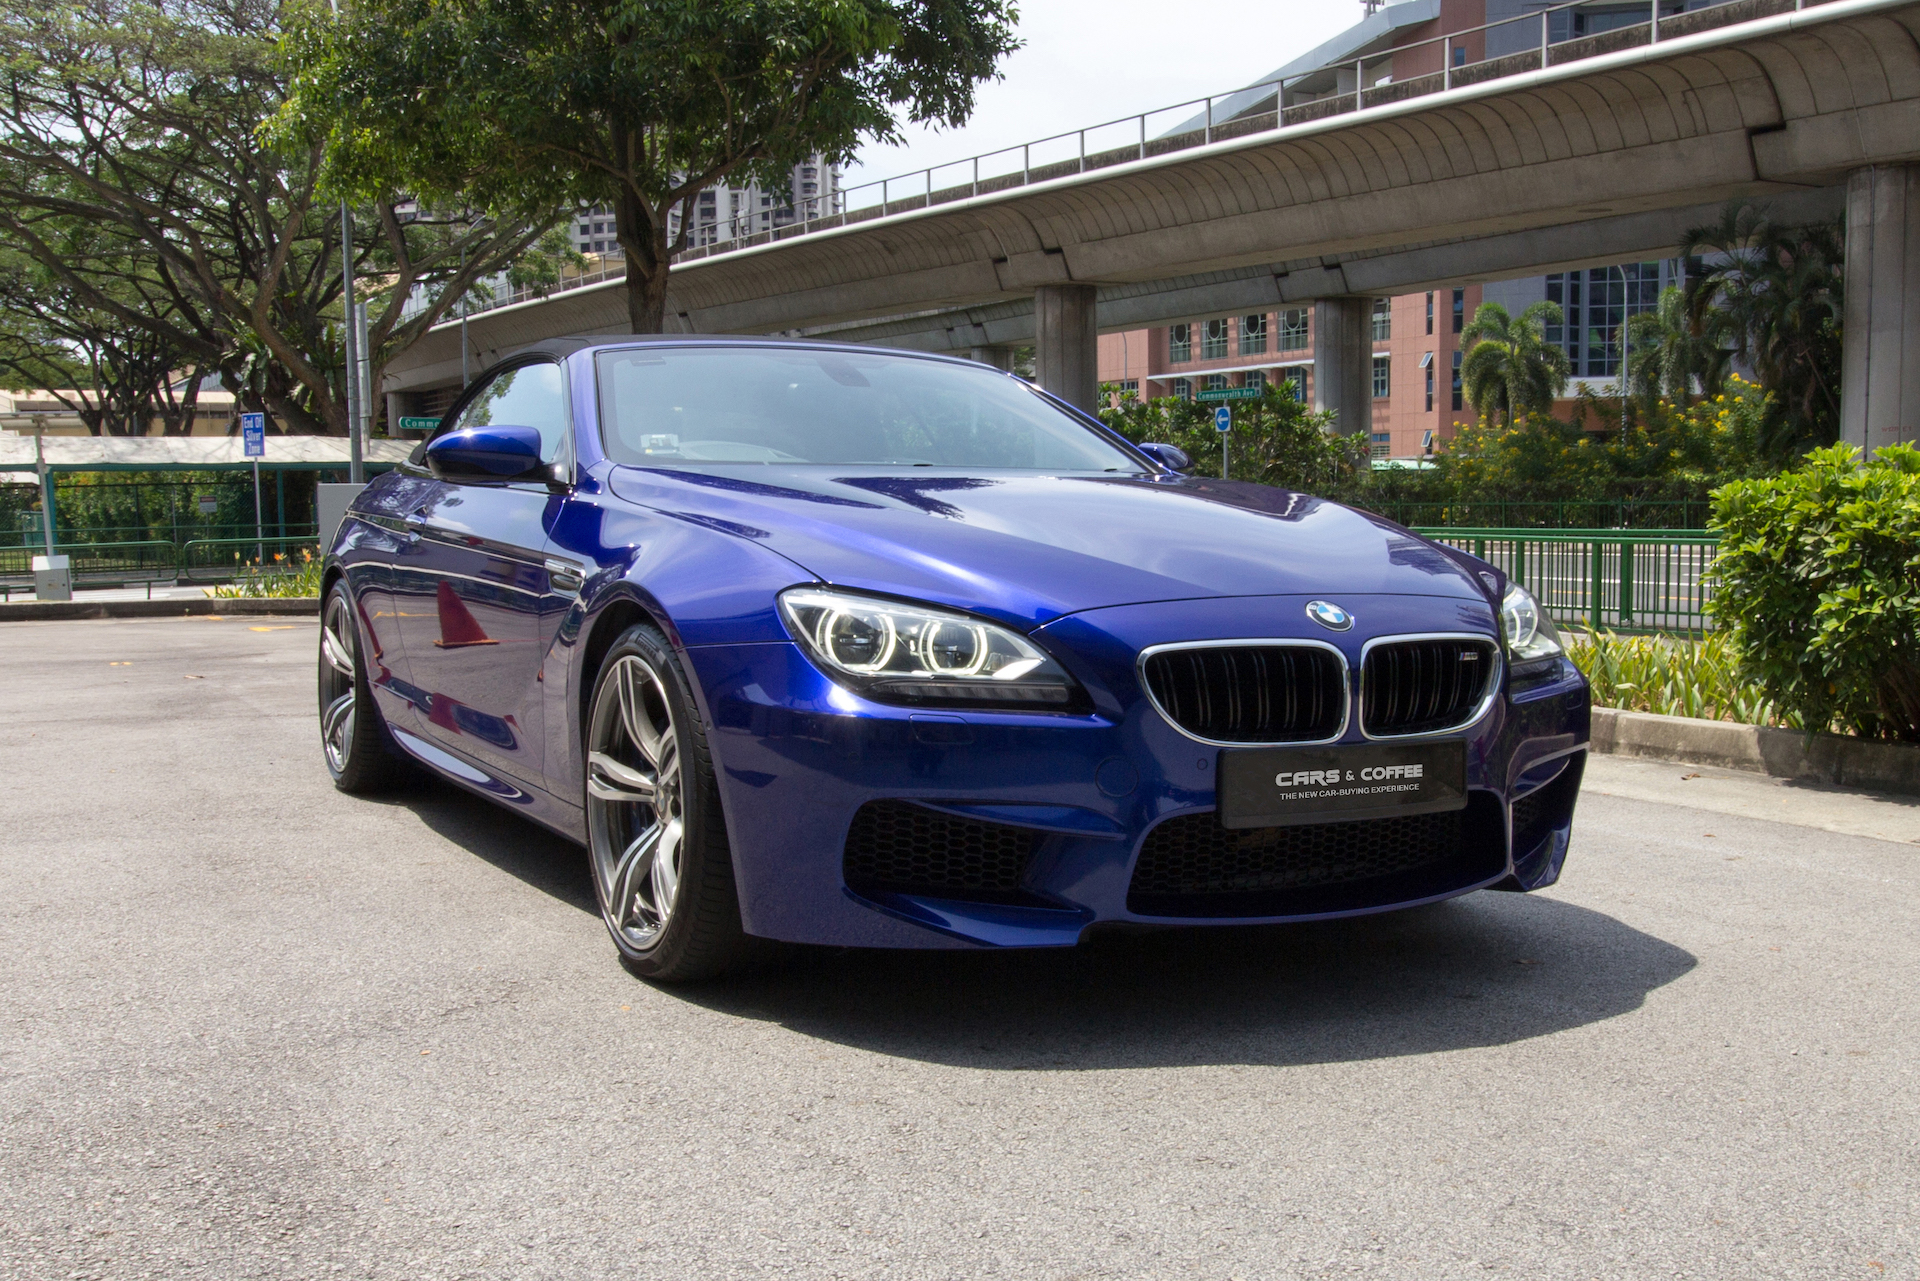 Certified Pre-Owned BMW M6 Cabriolet | Cars and Coffee Singapore